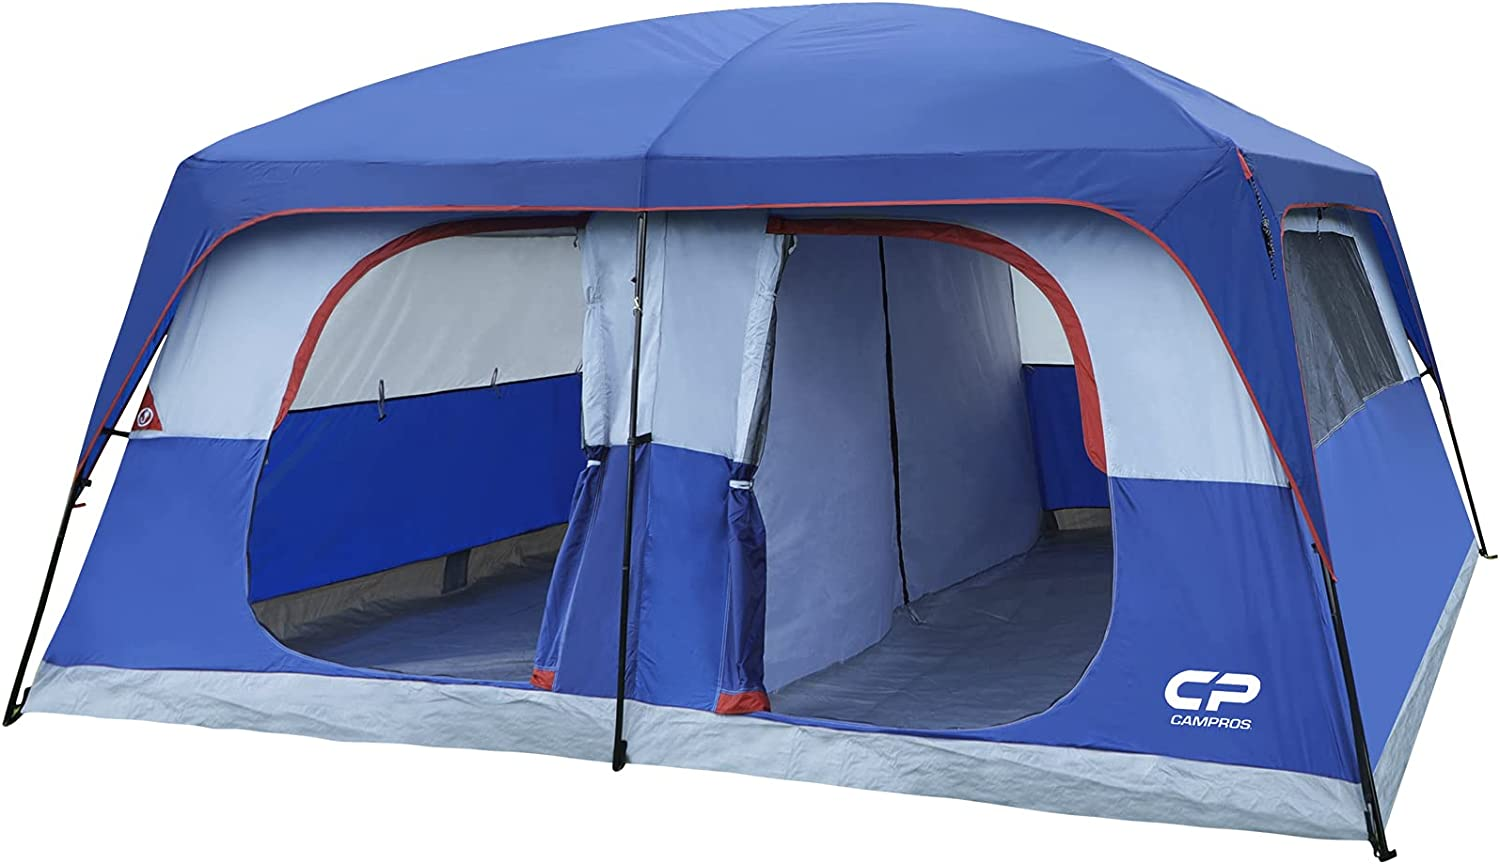 CAMPROS Tent-12-Person-Camping-Tents Max 67% OFF Waterproof Famil Windproof Super special price